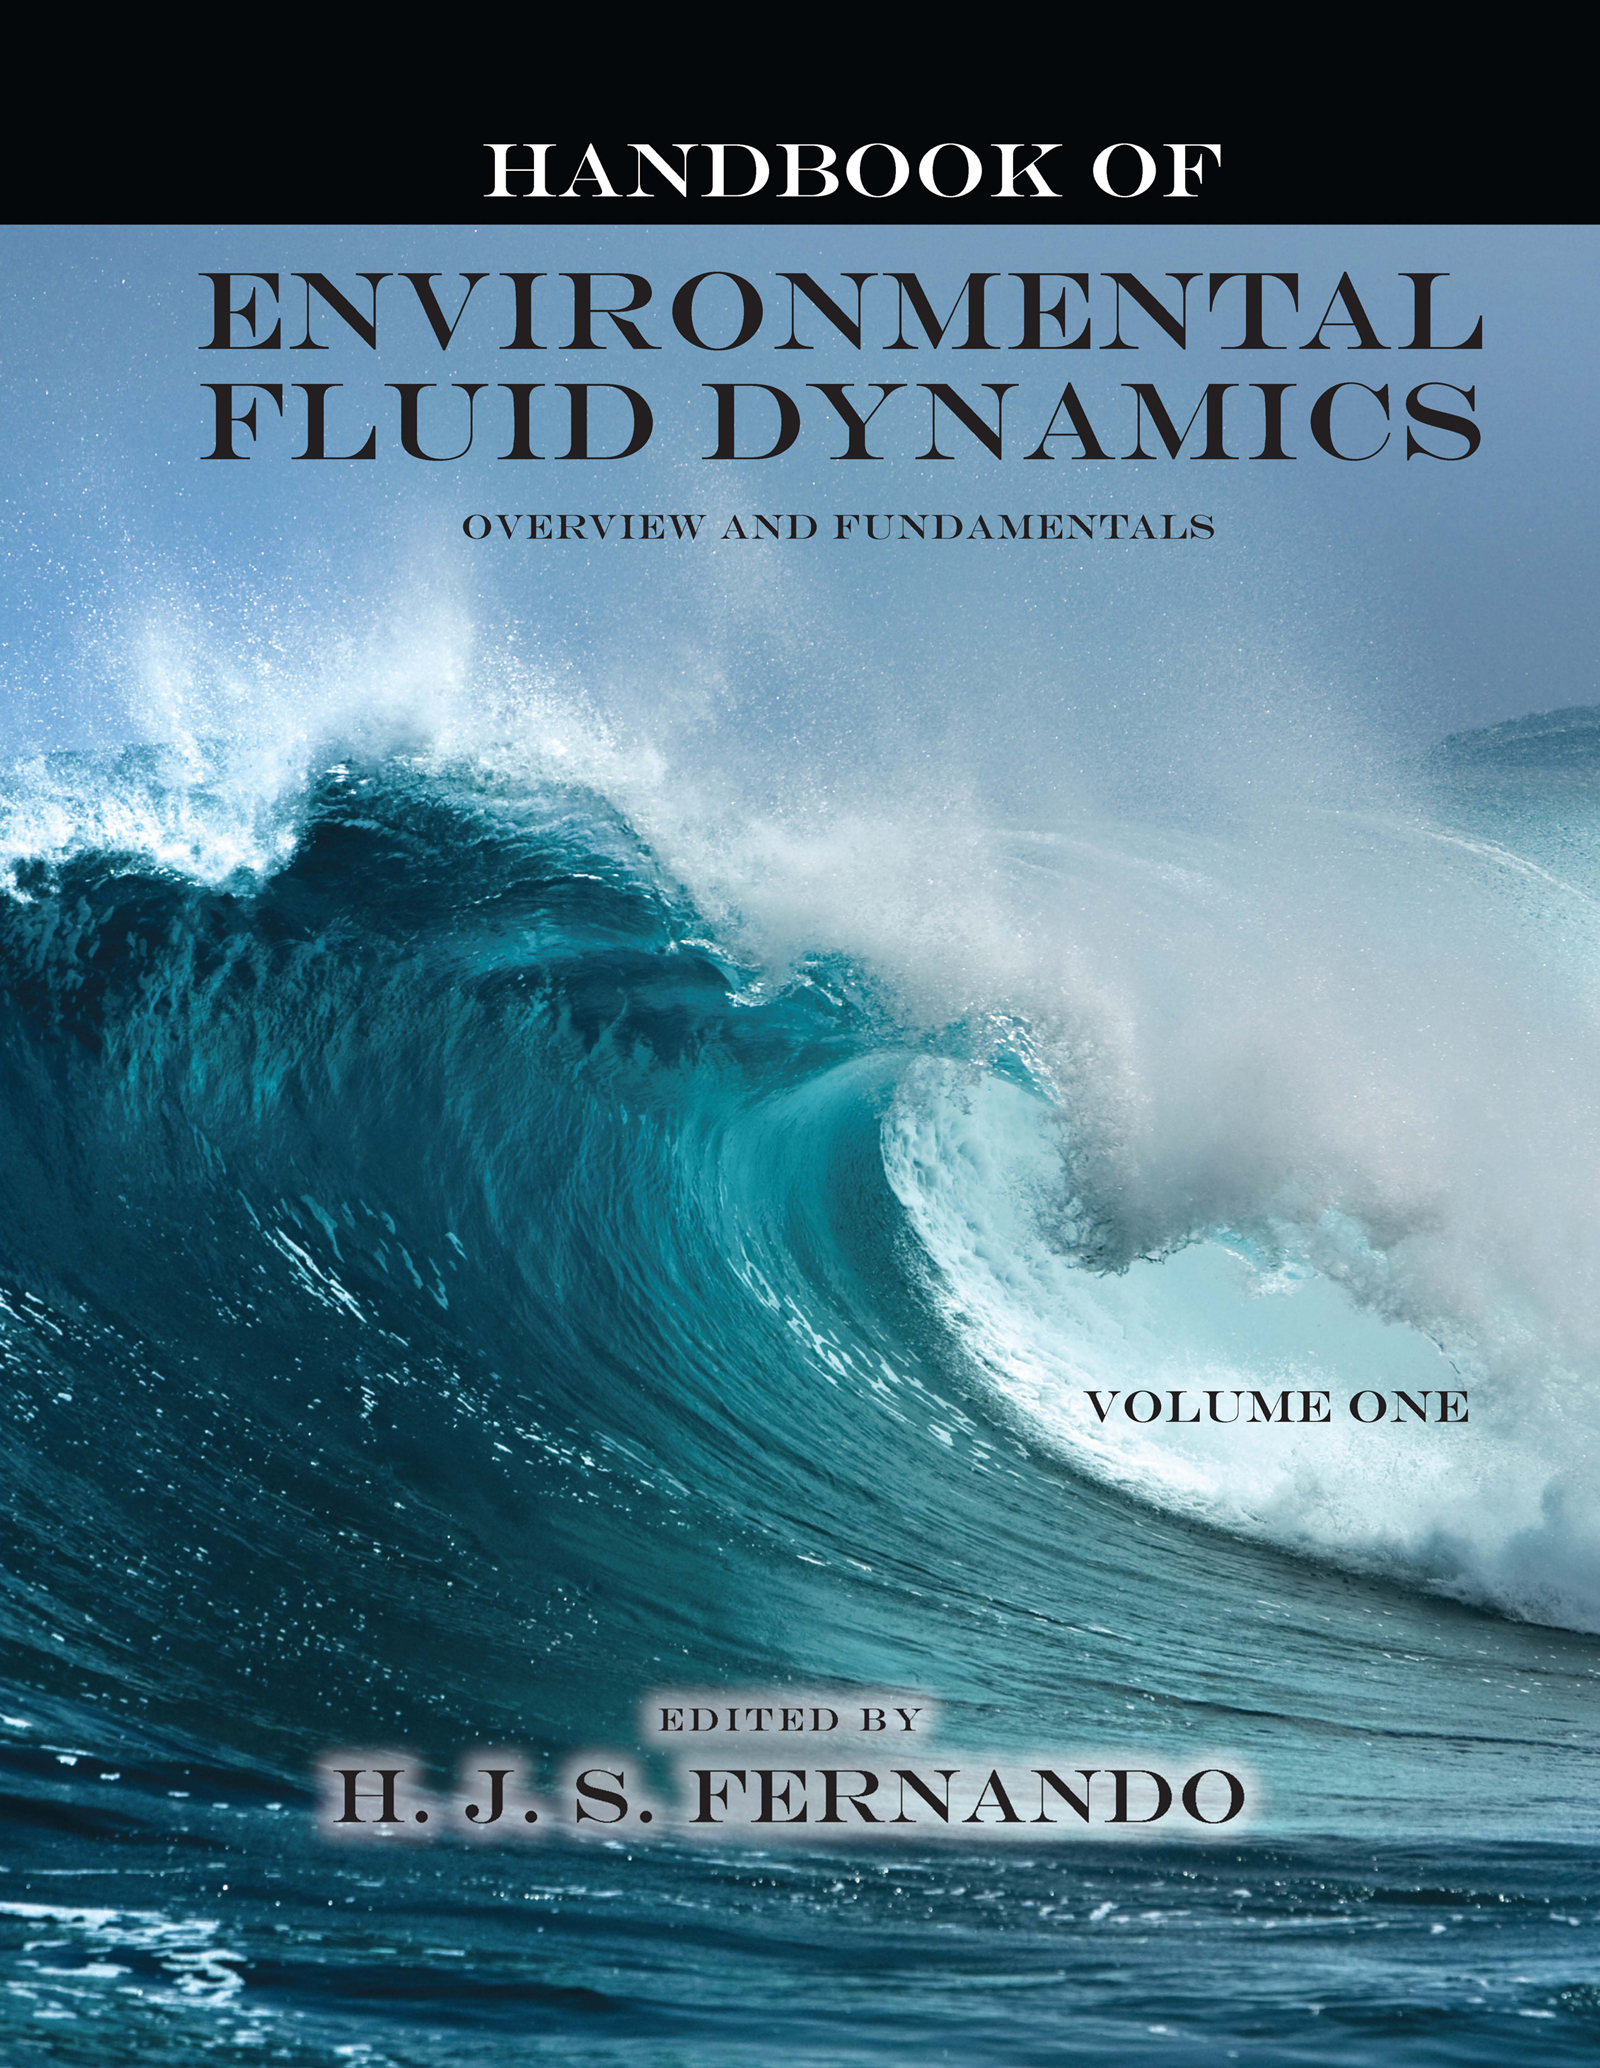 Handbook of Environmental Fluid Dynamics, Volume One: Overview and Fundamentals book cover